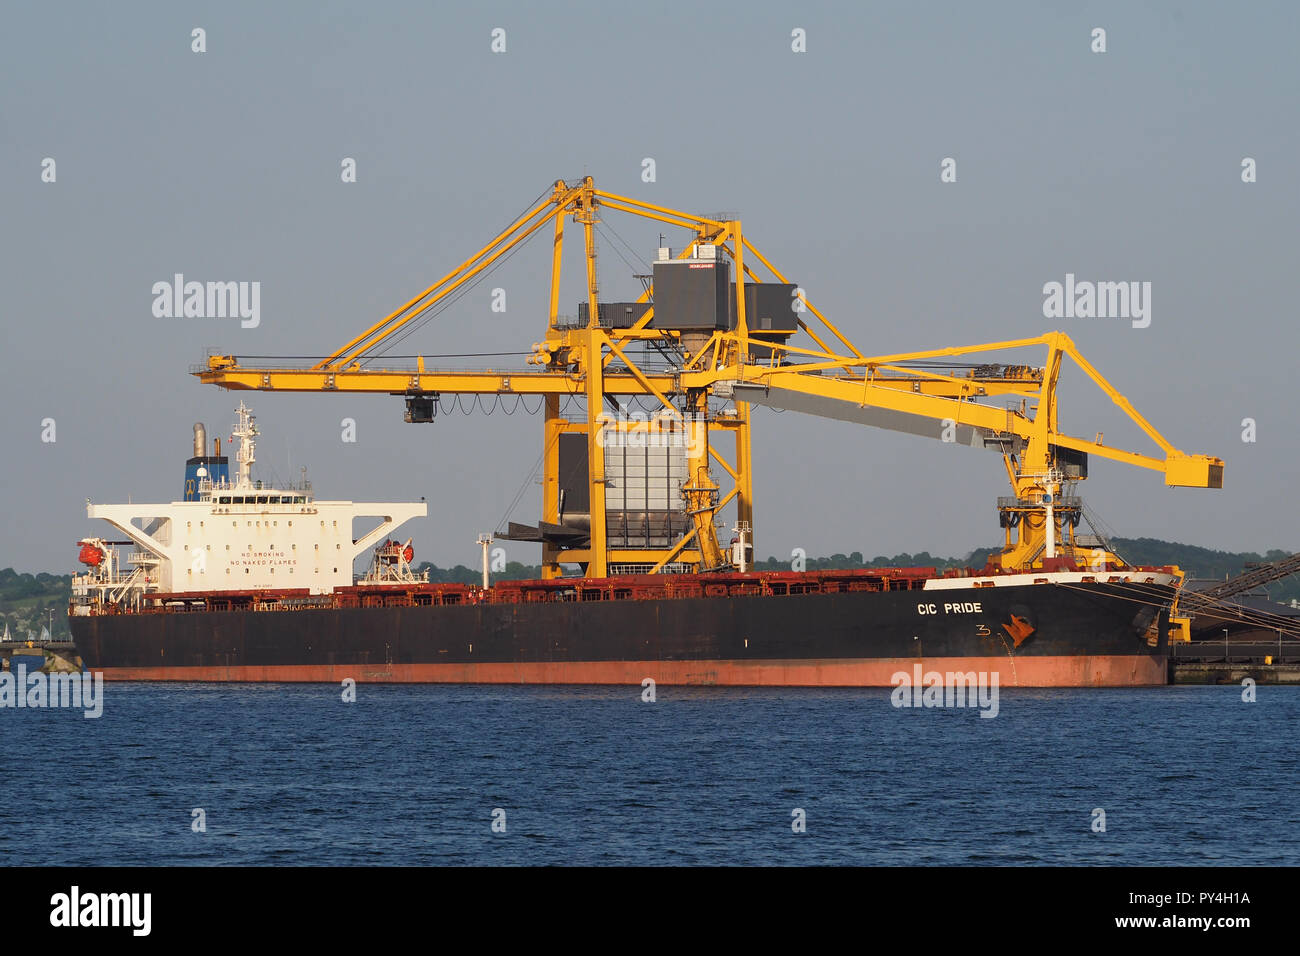 Capesizebulker CIC Pride discharging coal at Aabenraa powerplantStock Photo